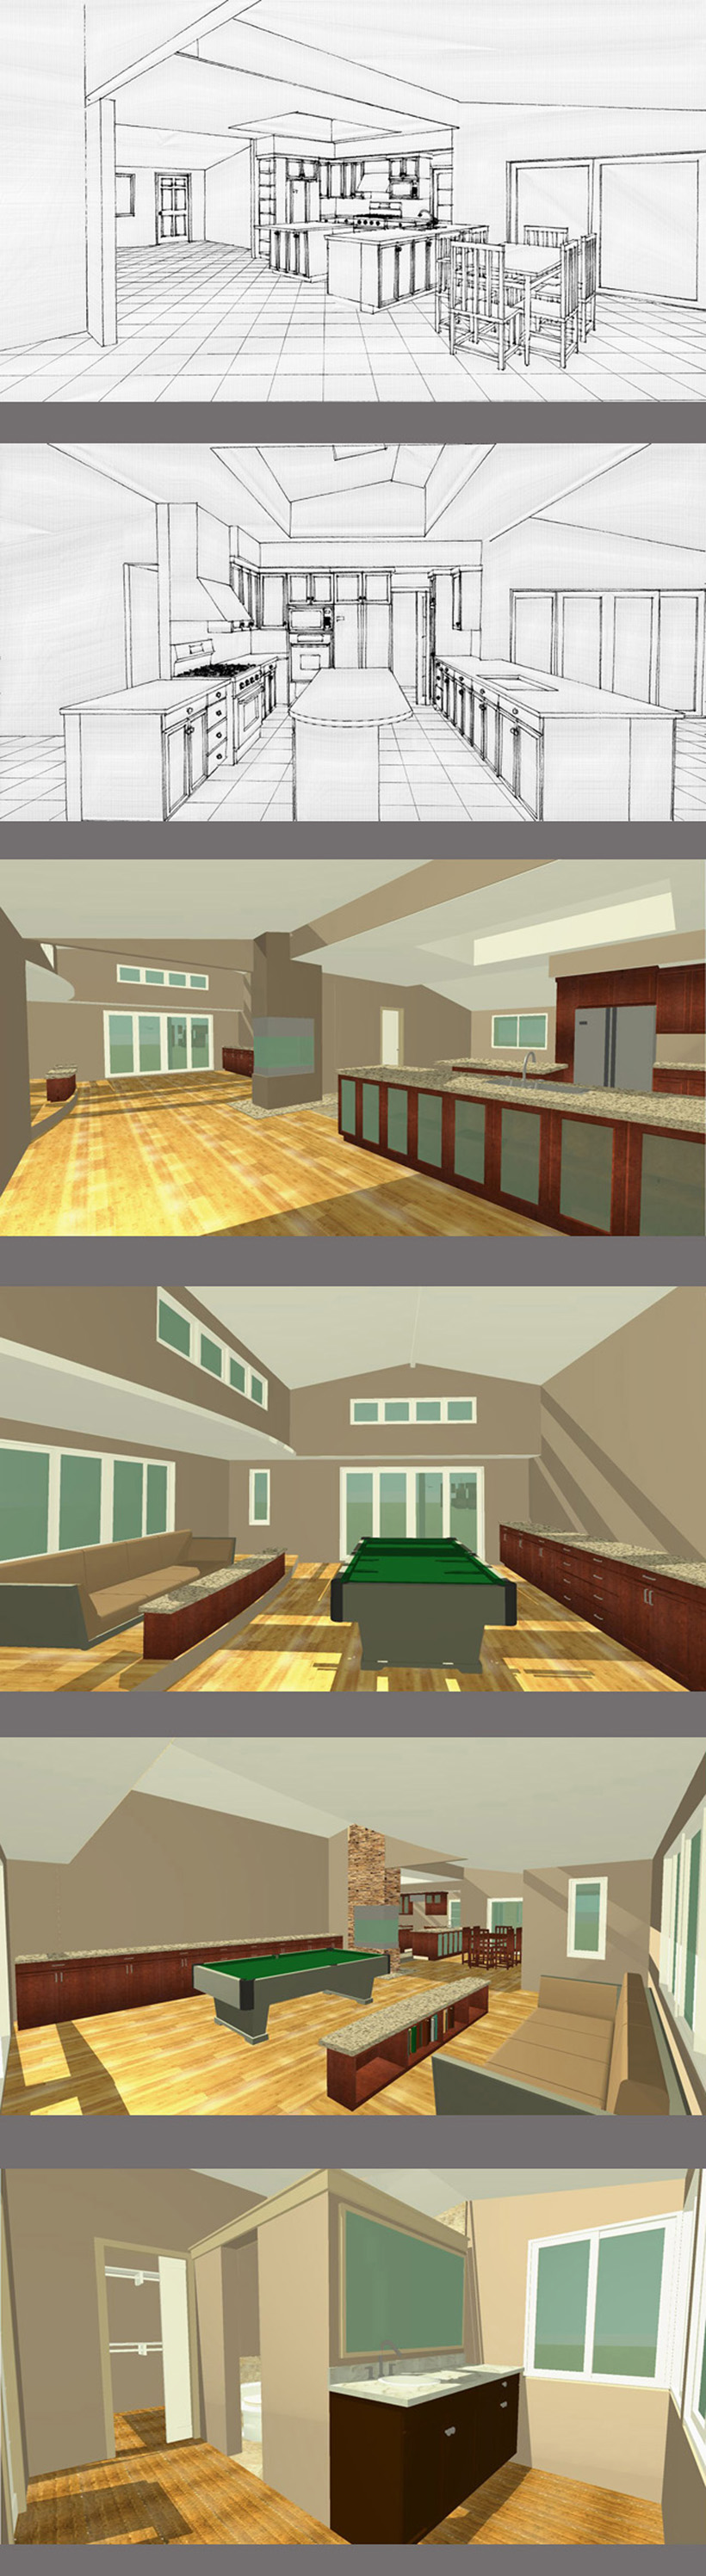 Game Room, Kitchen, Dining, Master Bath & Covered Porch, ENRarchitects, Thousand Oaks, CA - CAD Renderings